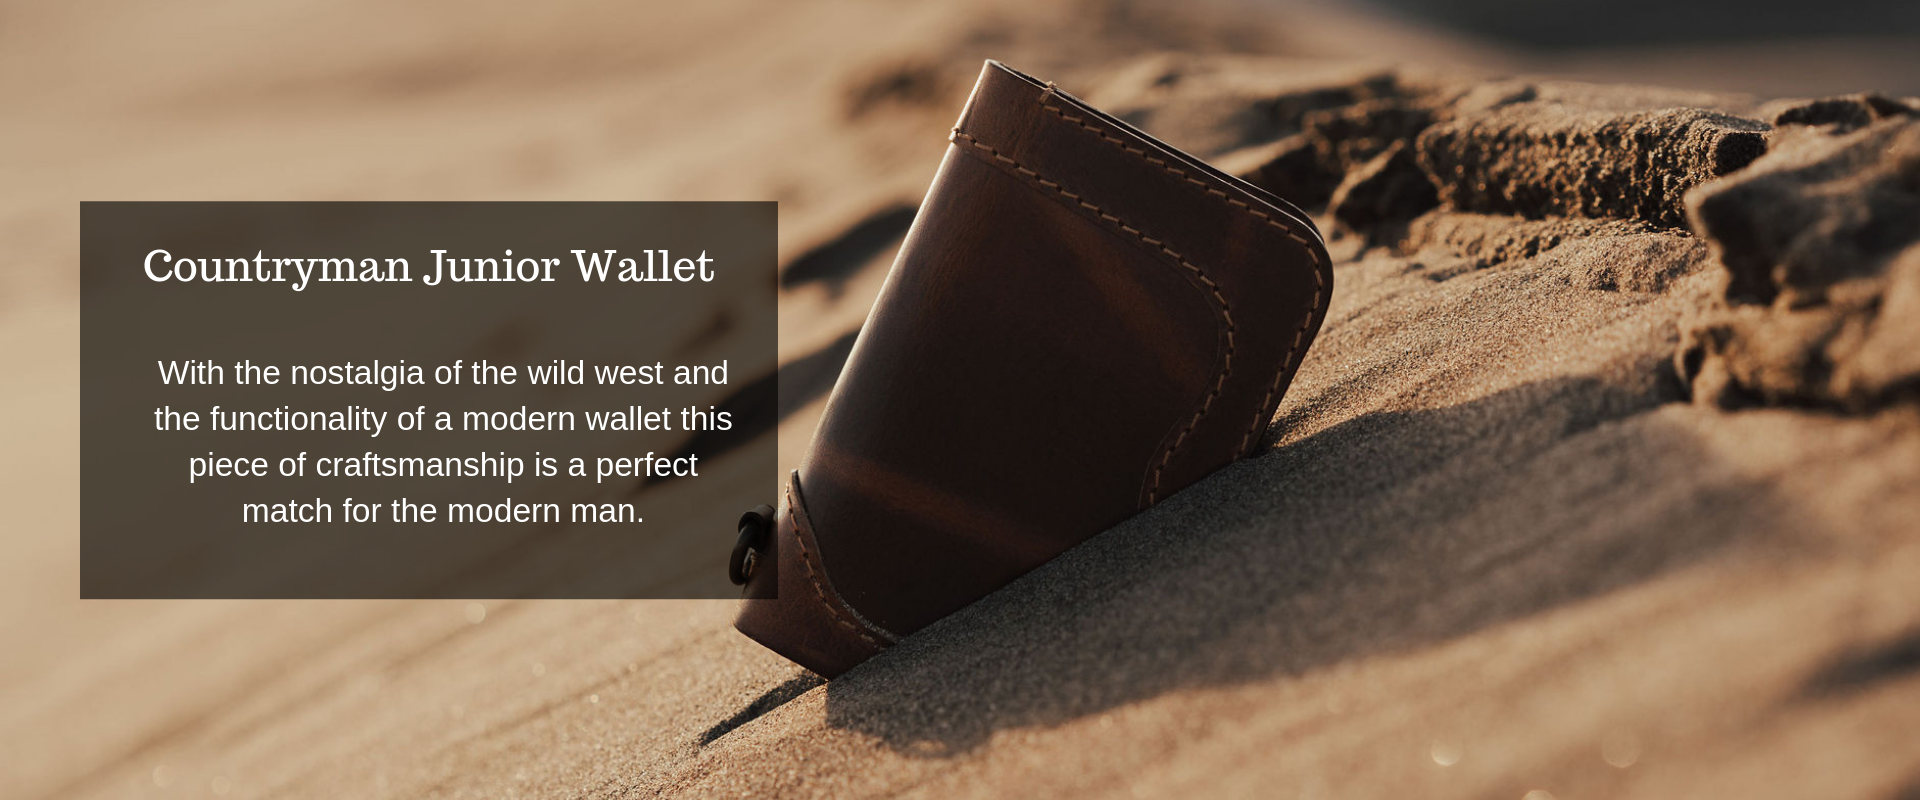 leather wallet,leather bifold wallet,minimalist leather wallet,mens slim wallet,mens wallet,card wallet,vertical leather wallet,travel wallet United States